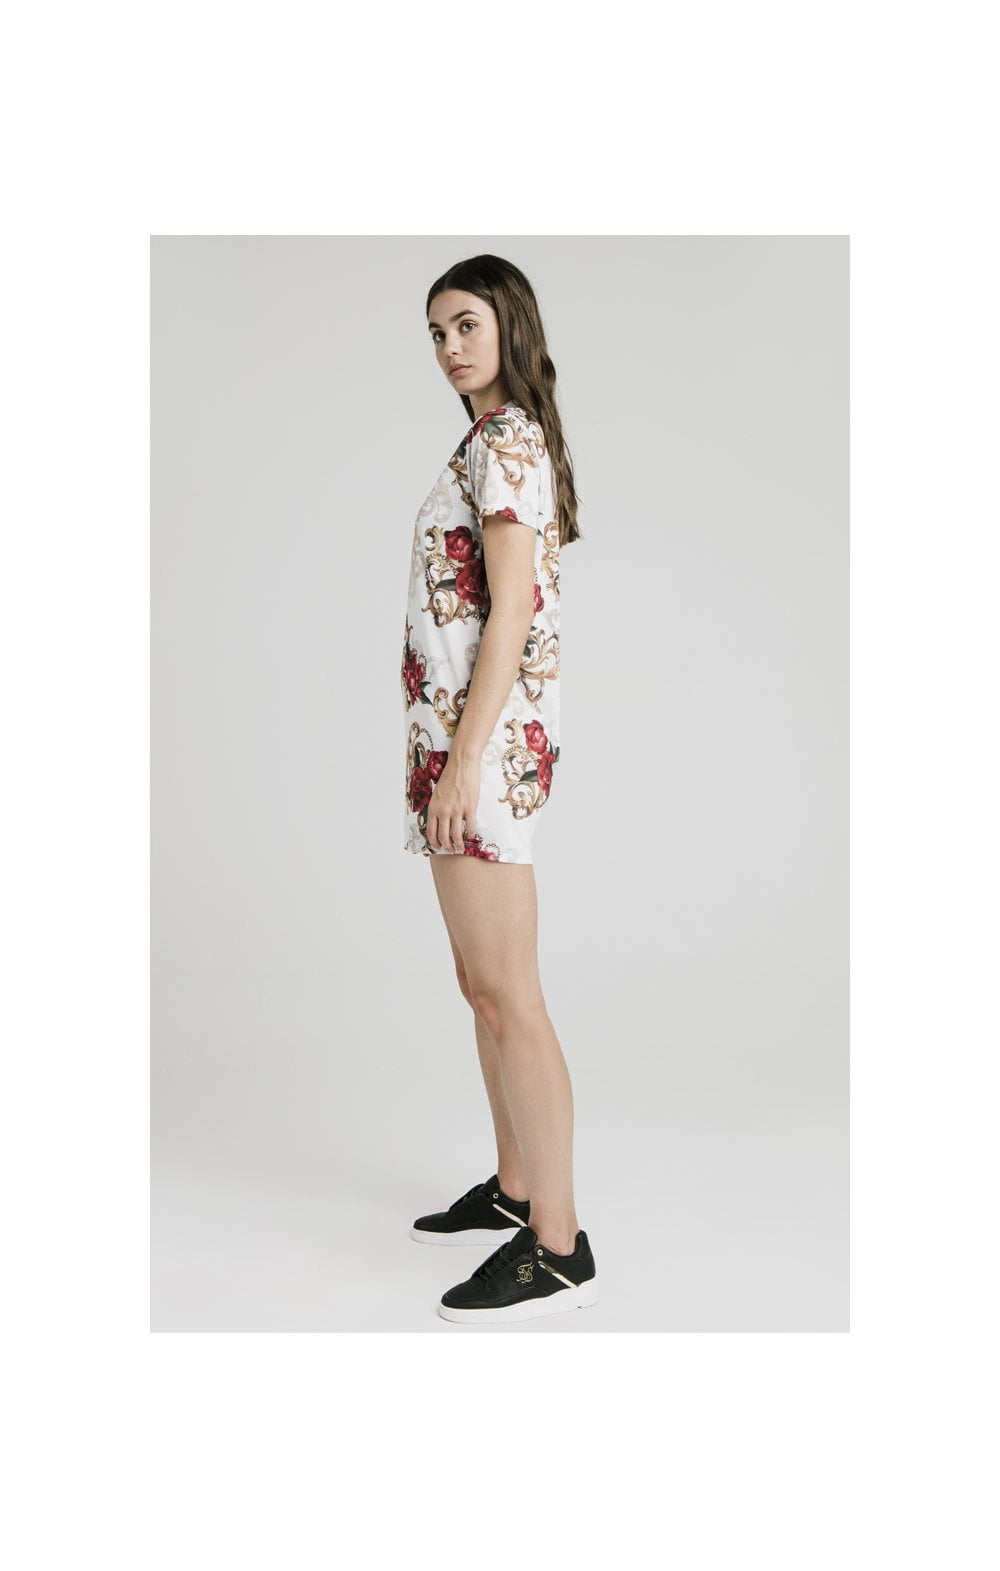 SikSilk T-Shirt Dress - White & Floral Elegance (6)